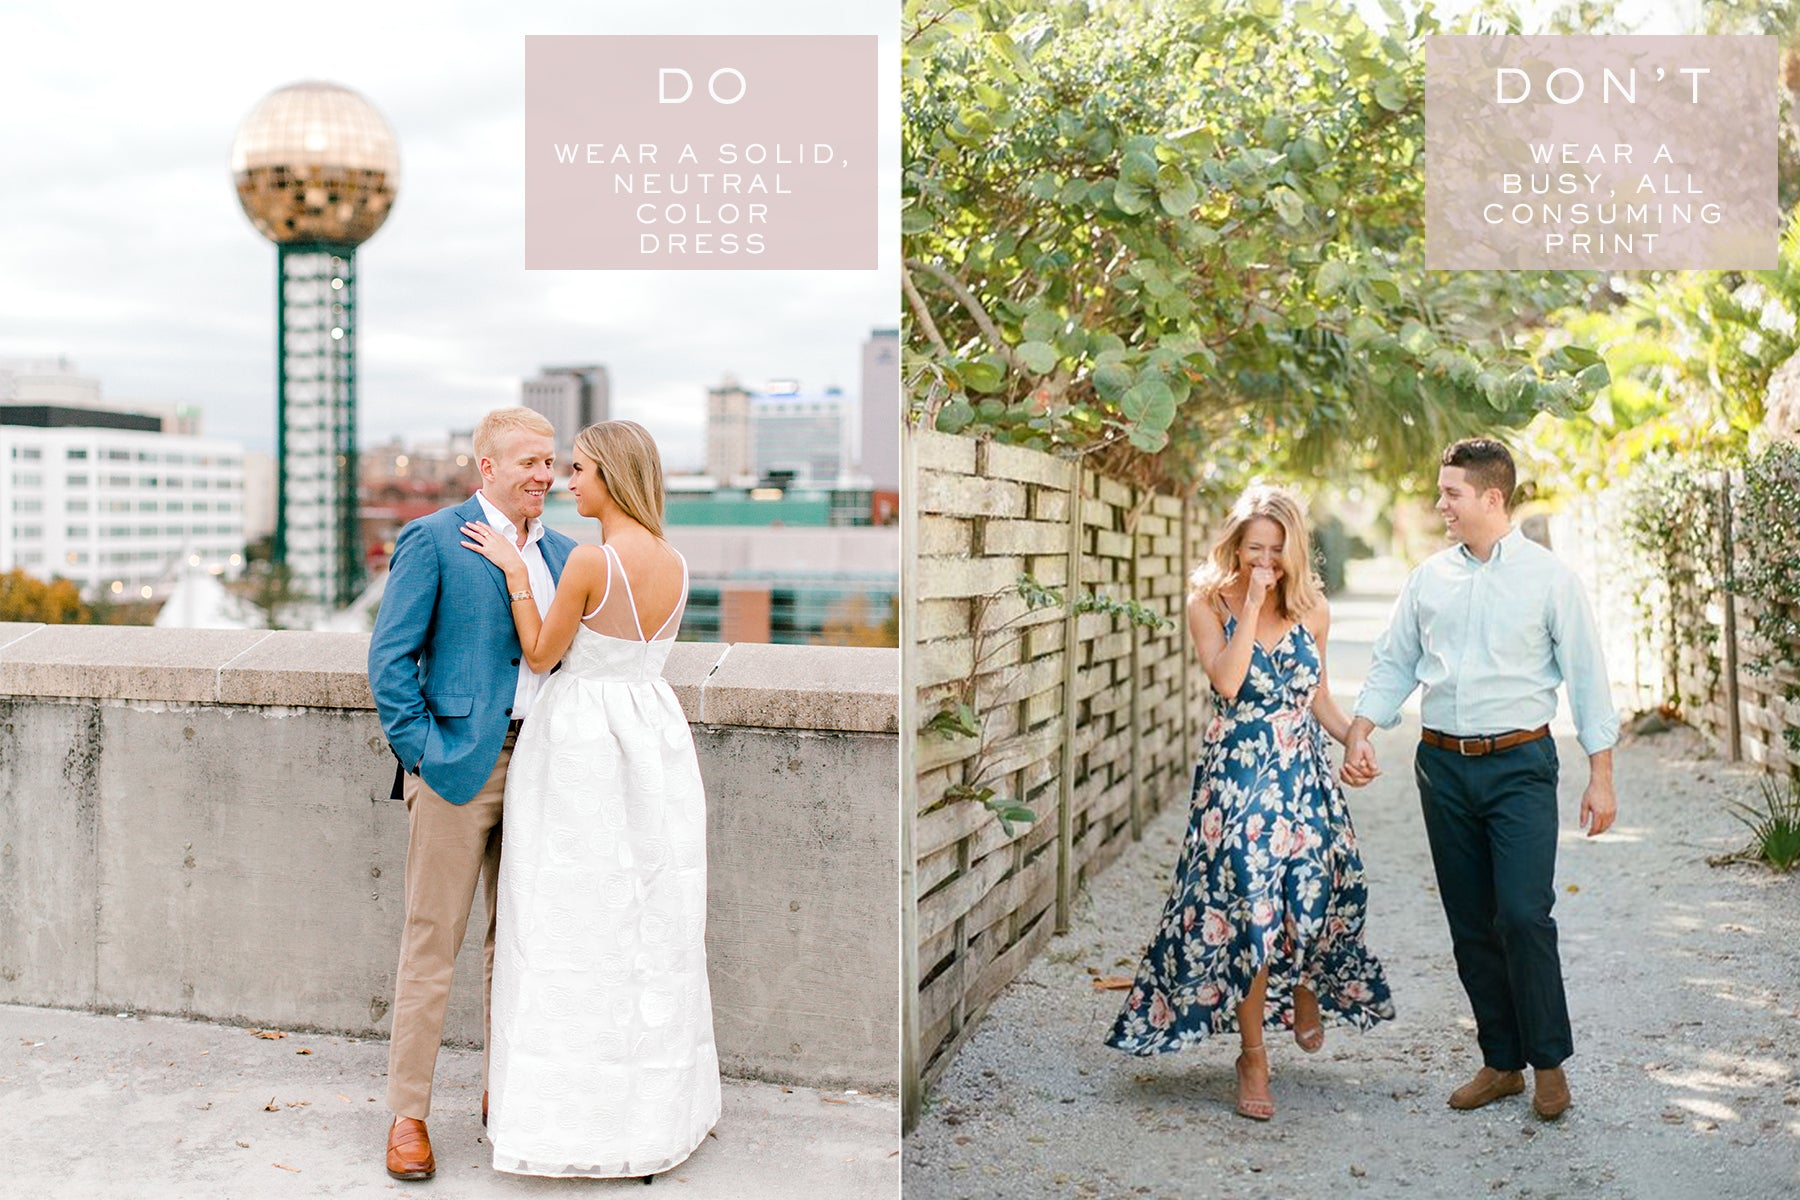 Engagement Photo Outfit Tips | What to Wear for Engagement Photos | Eternal Ivory